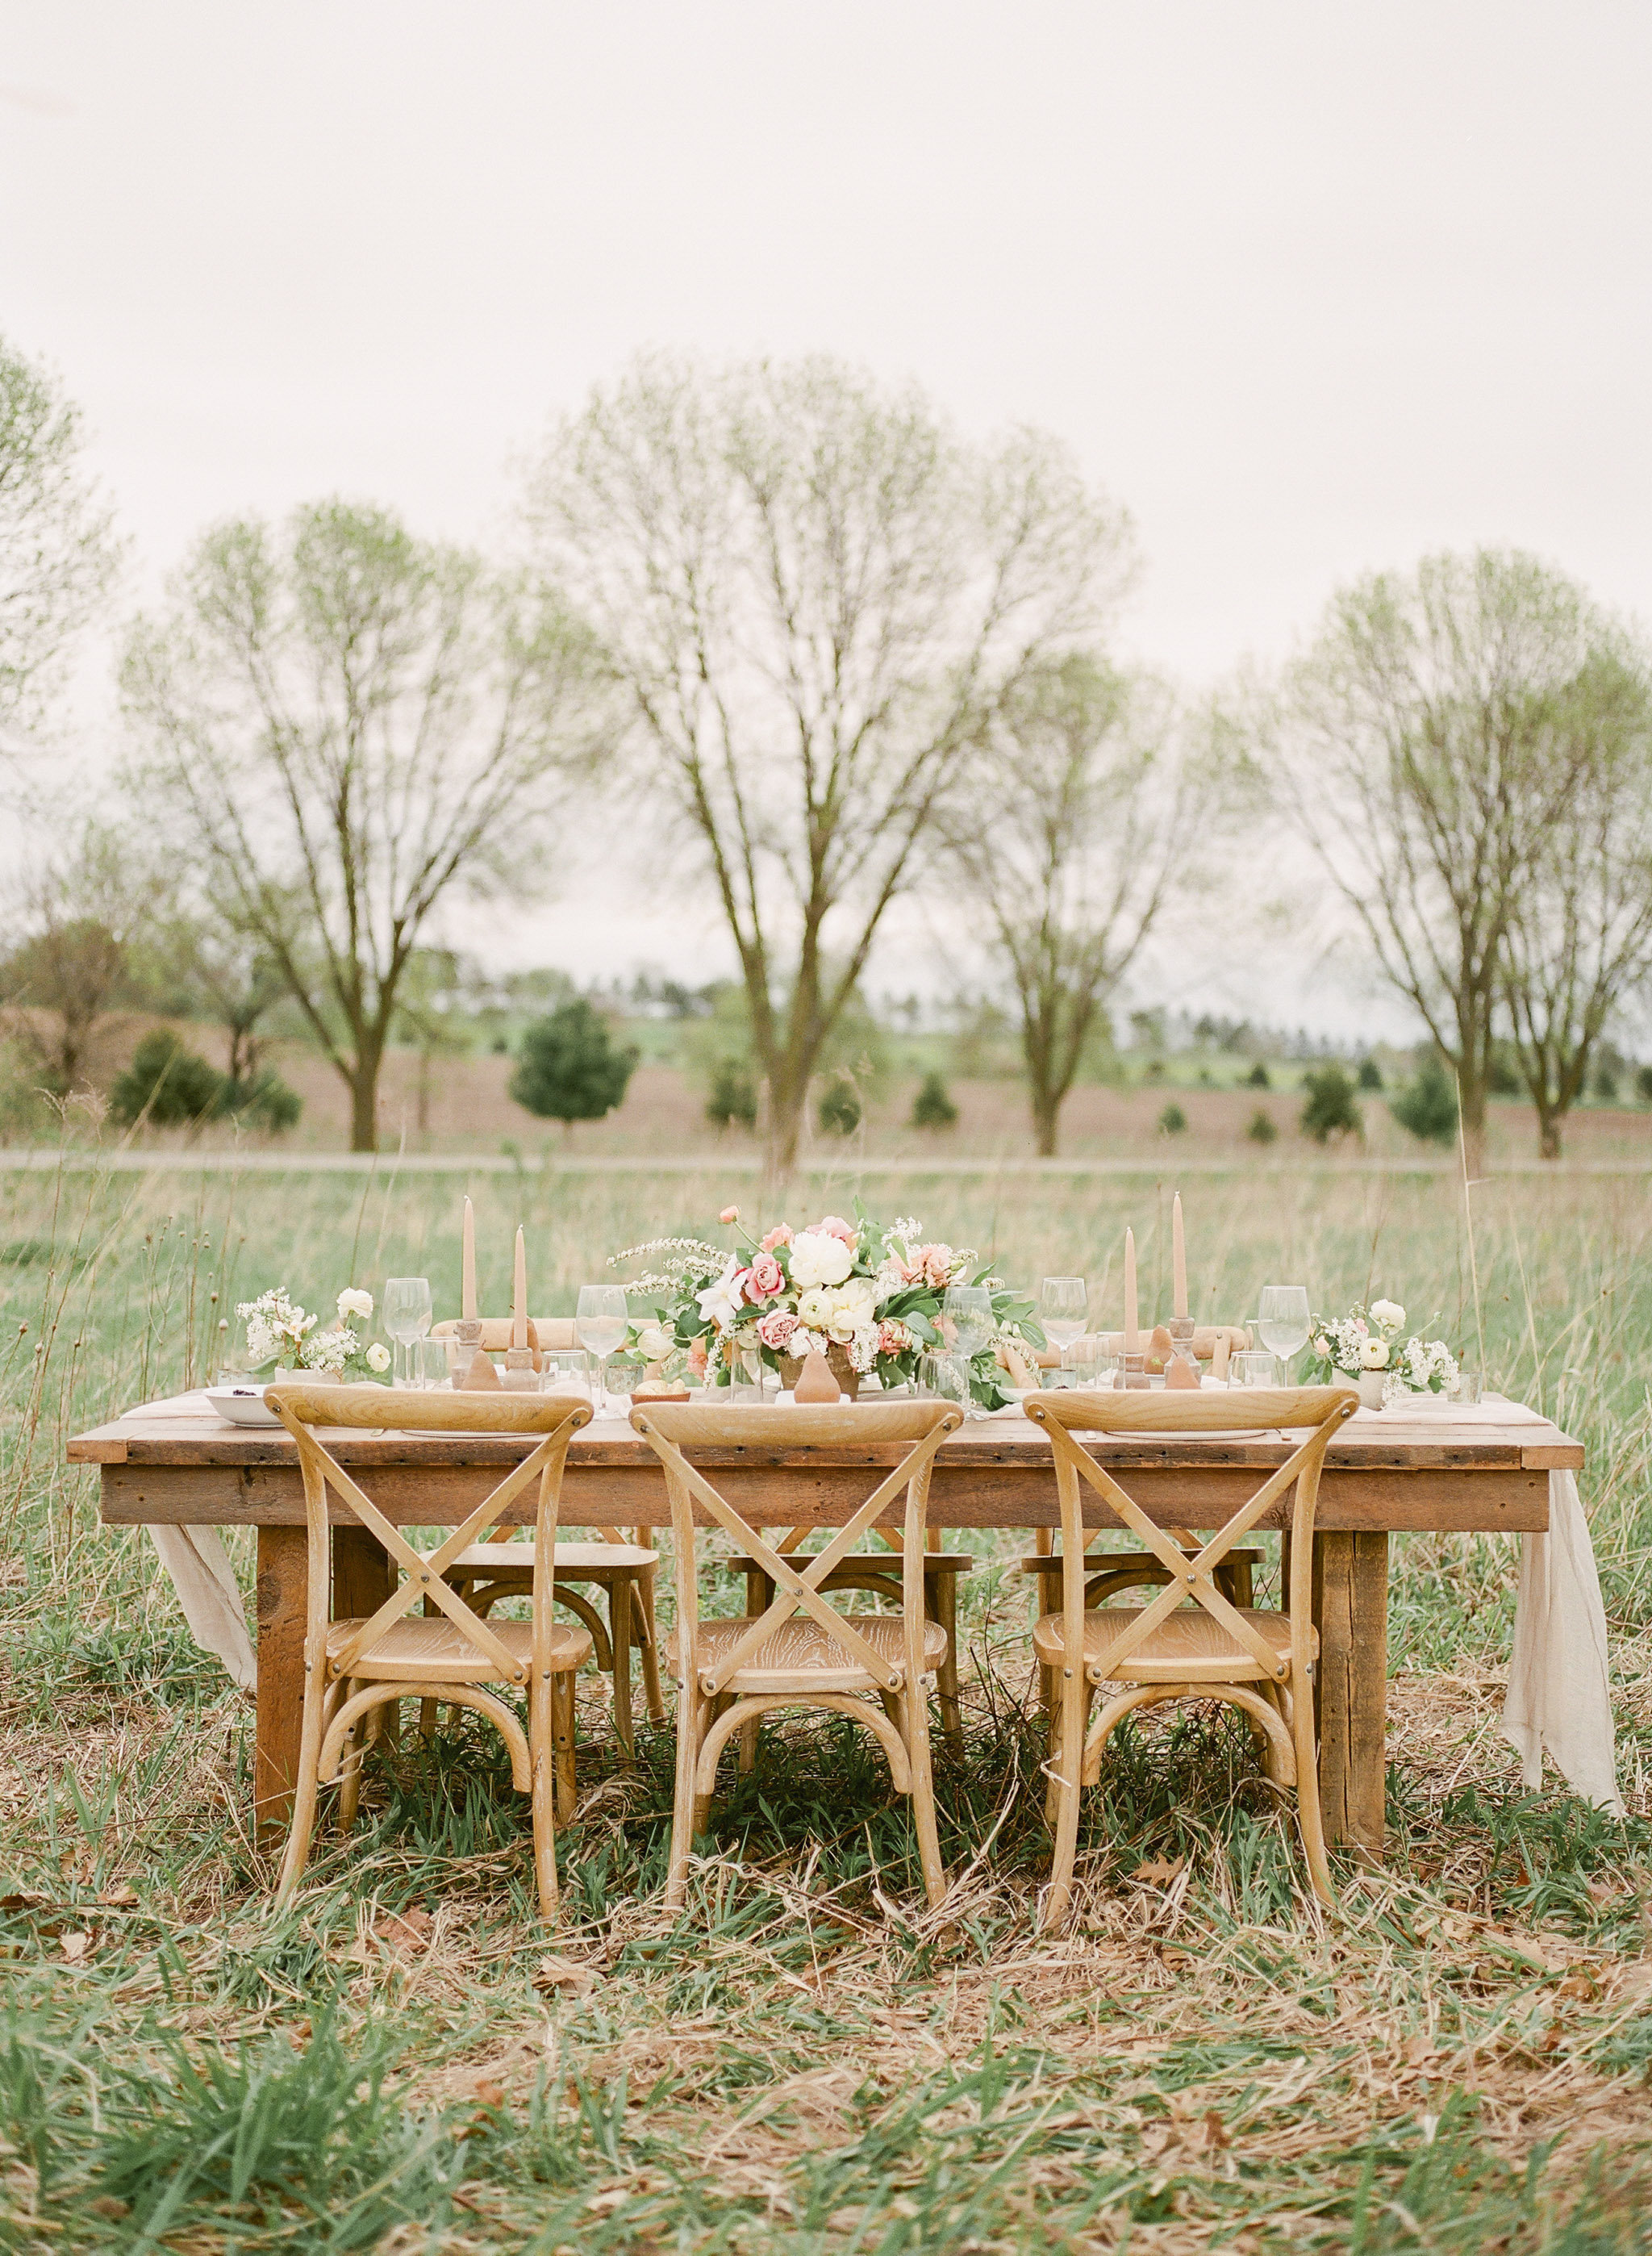 Farm to Table | Farm Wedding | Farm Elopement | Country Wedding | Ivory+Bliss | Photography Workshop | Fine Art Wedding Blog | Joy Wed | Ivory & Green Wedding | Farm Table | Organic Country Wedding